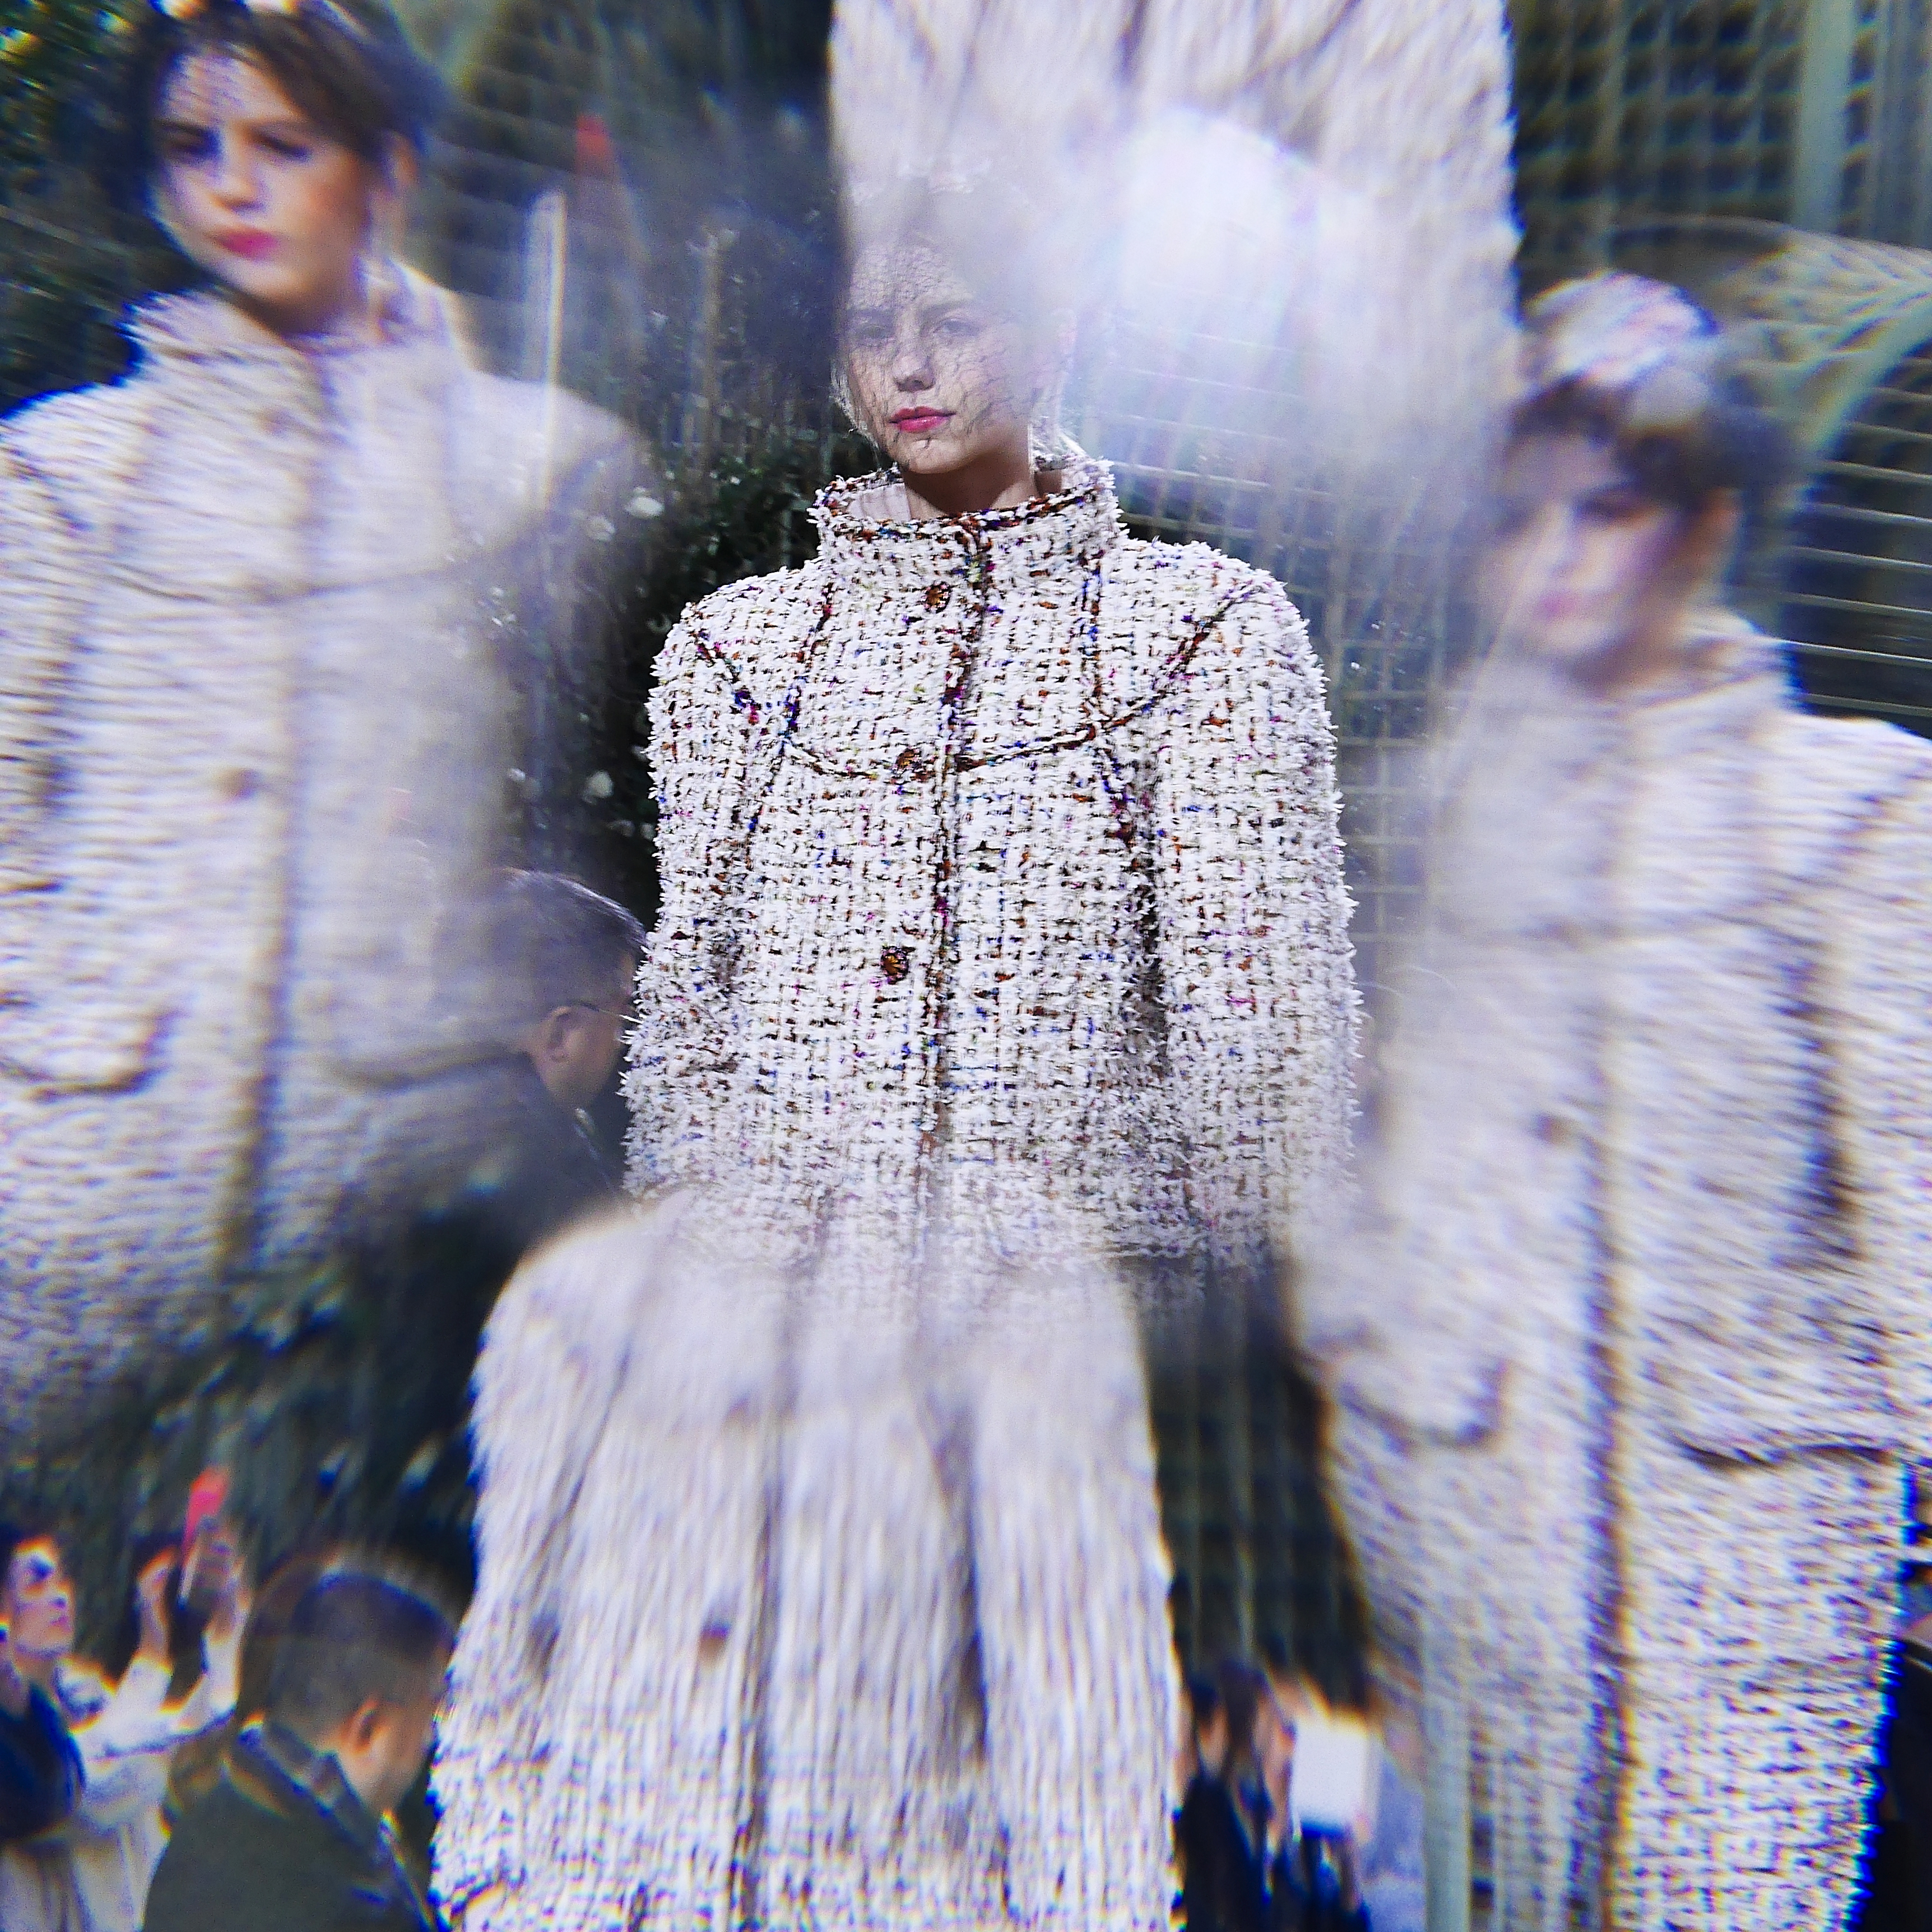 GARDEN OF EARTHY DELIGHTS AT CHANEL HAUTE COUTURE S/S 2018 – A VISION BY FRANK PERRIN